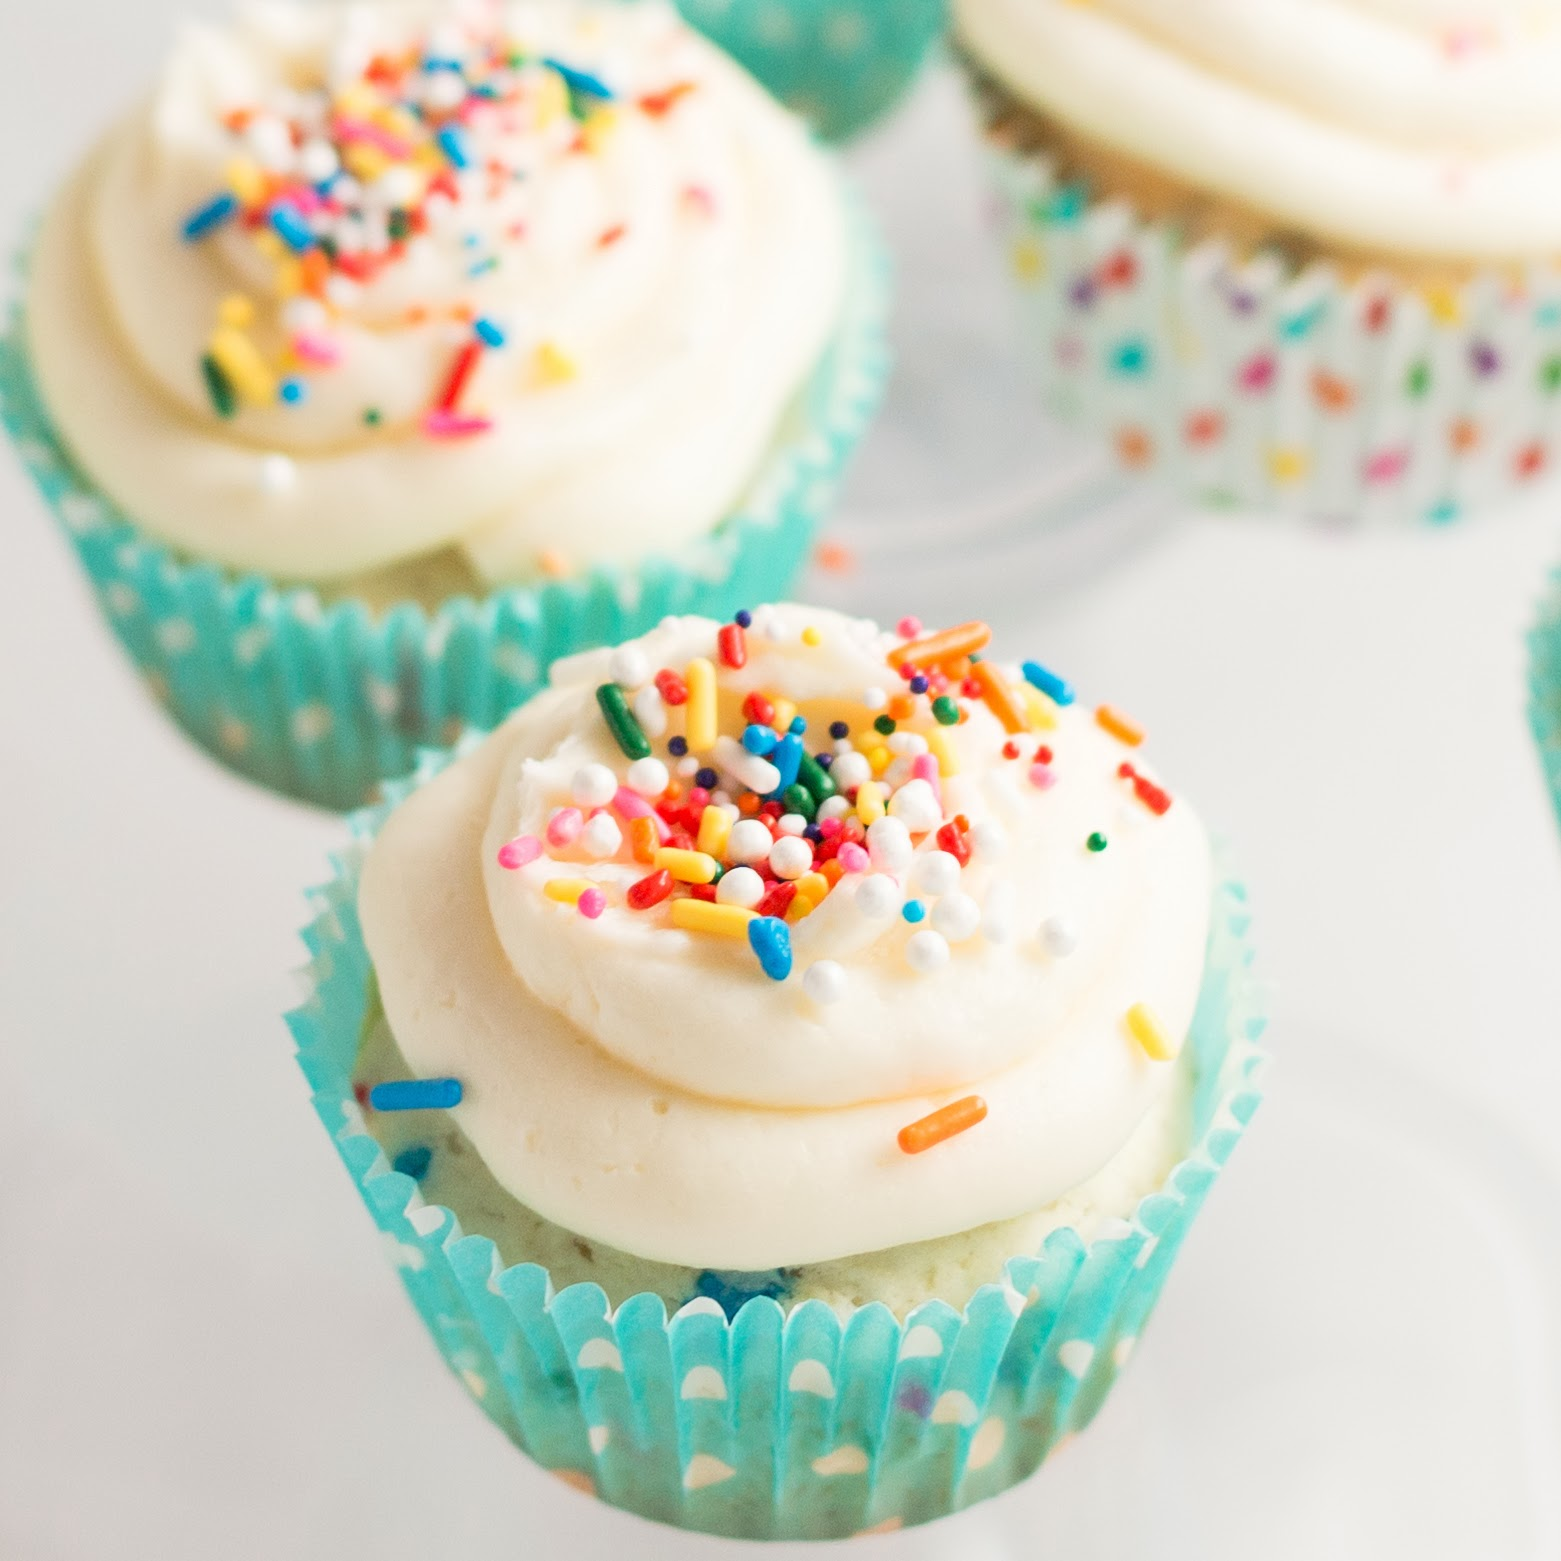 Vanilla Cupcakes with Frosting and Sprinkles